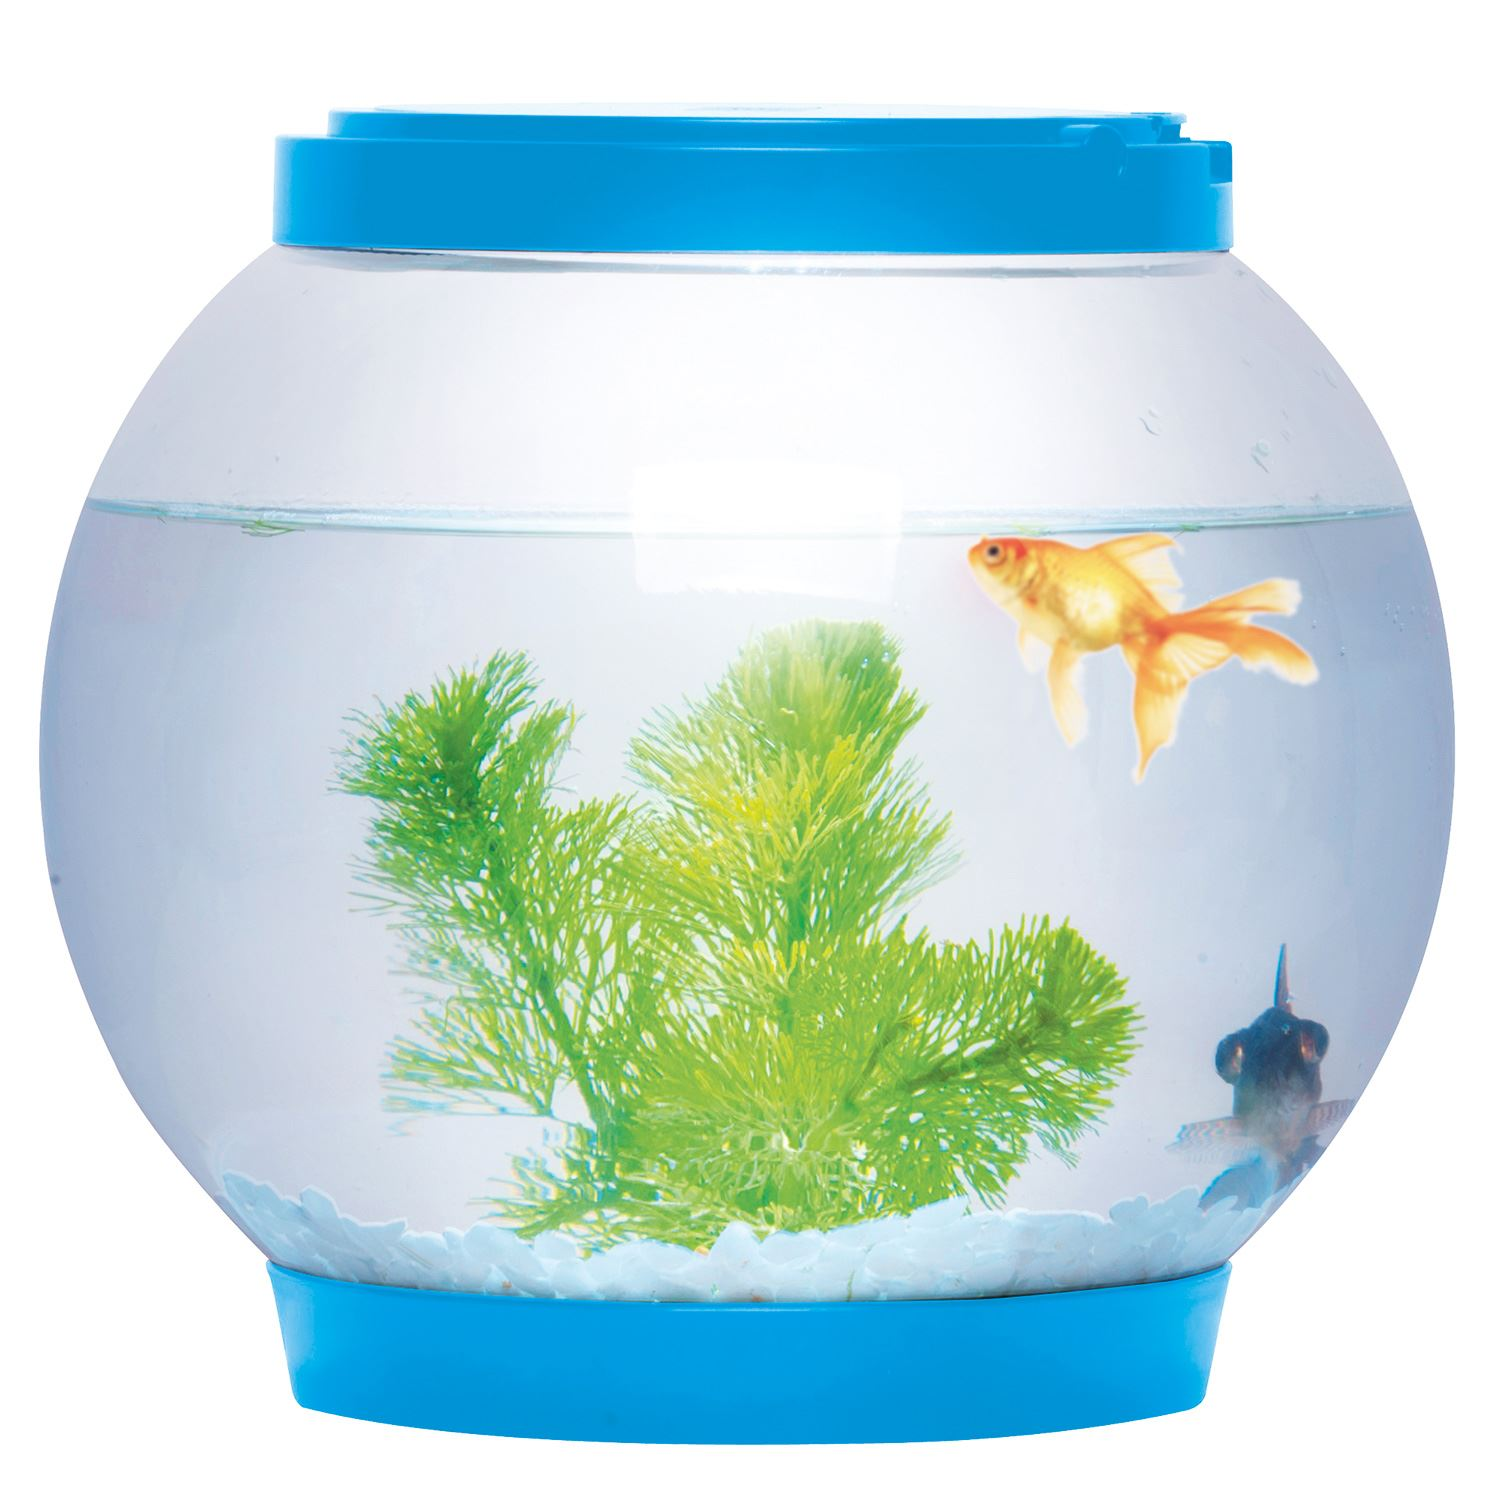 5 litre glass fish bowl led light aquarium goldfish betta